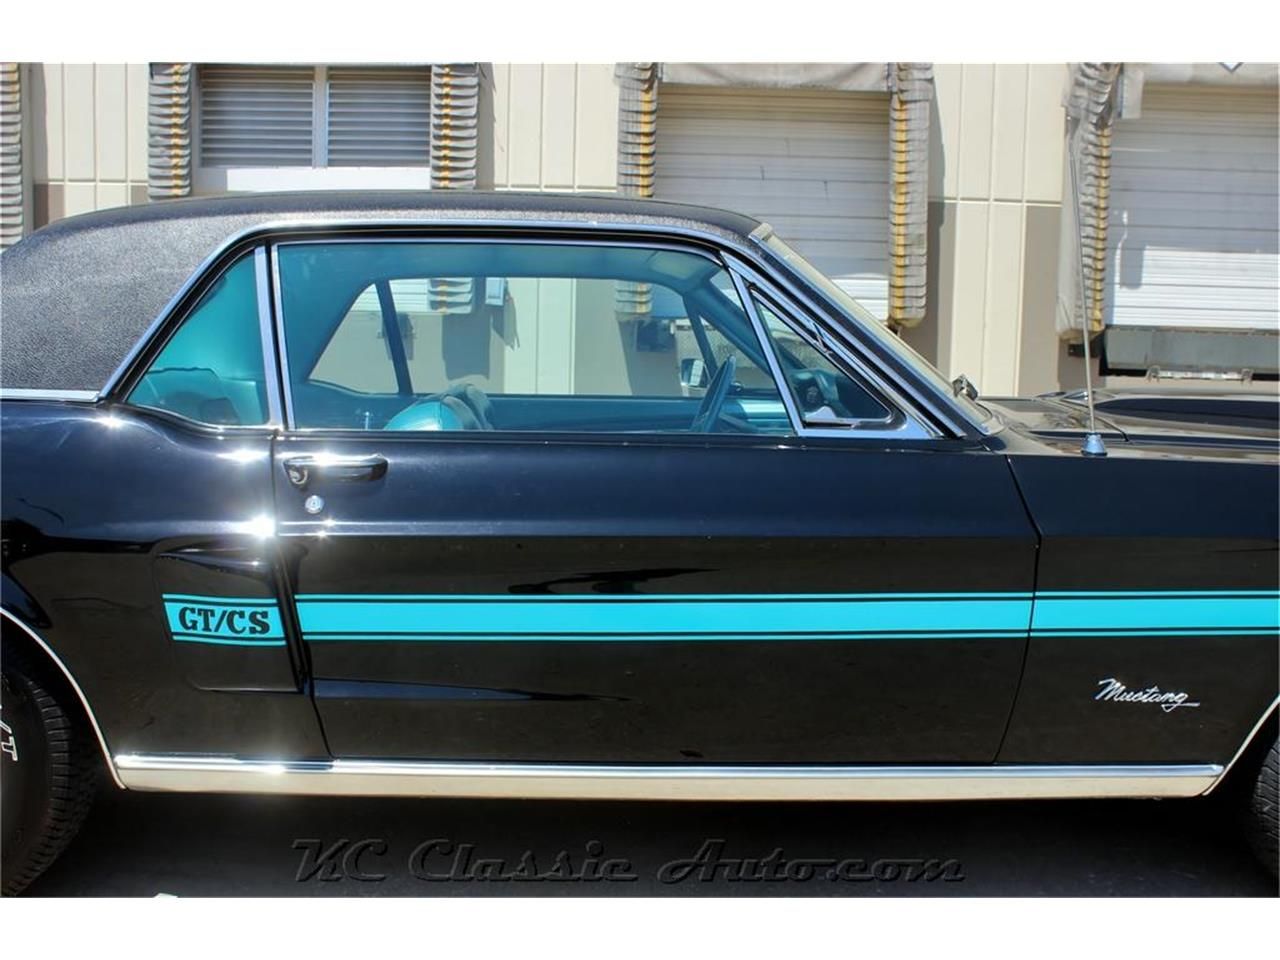 Large Picture of '68 Mustang GT/CS (California Special) - QQW5